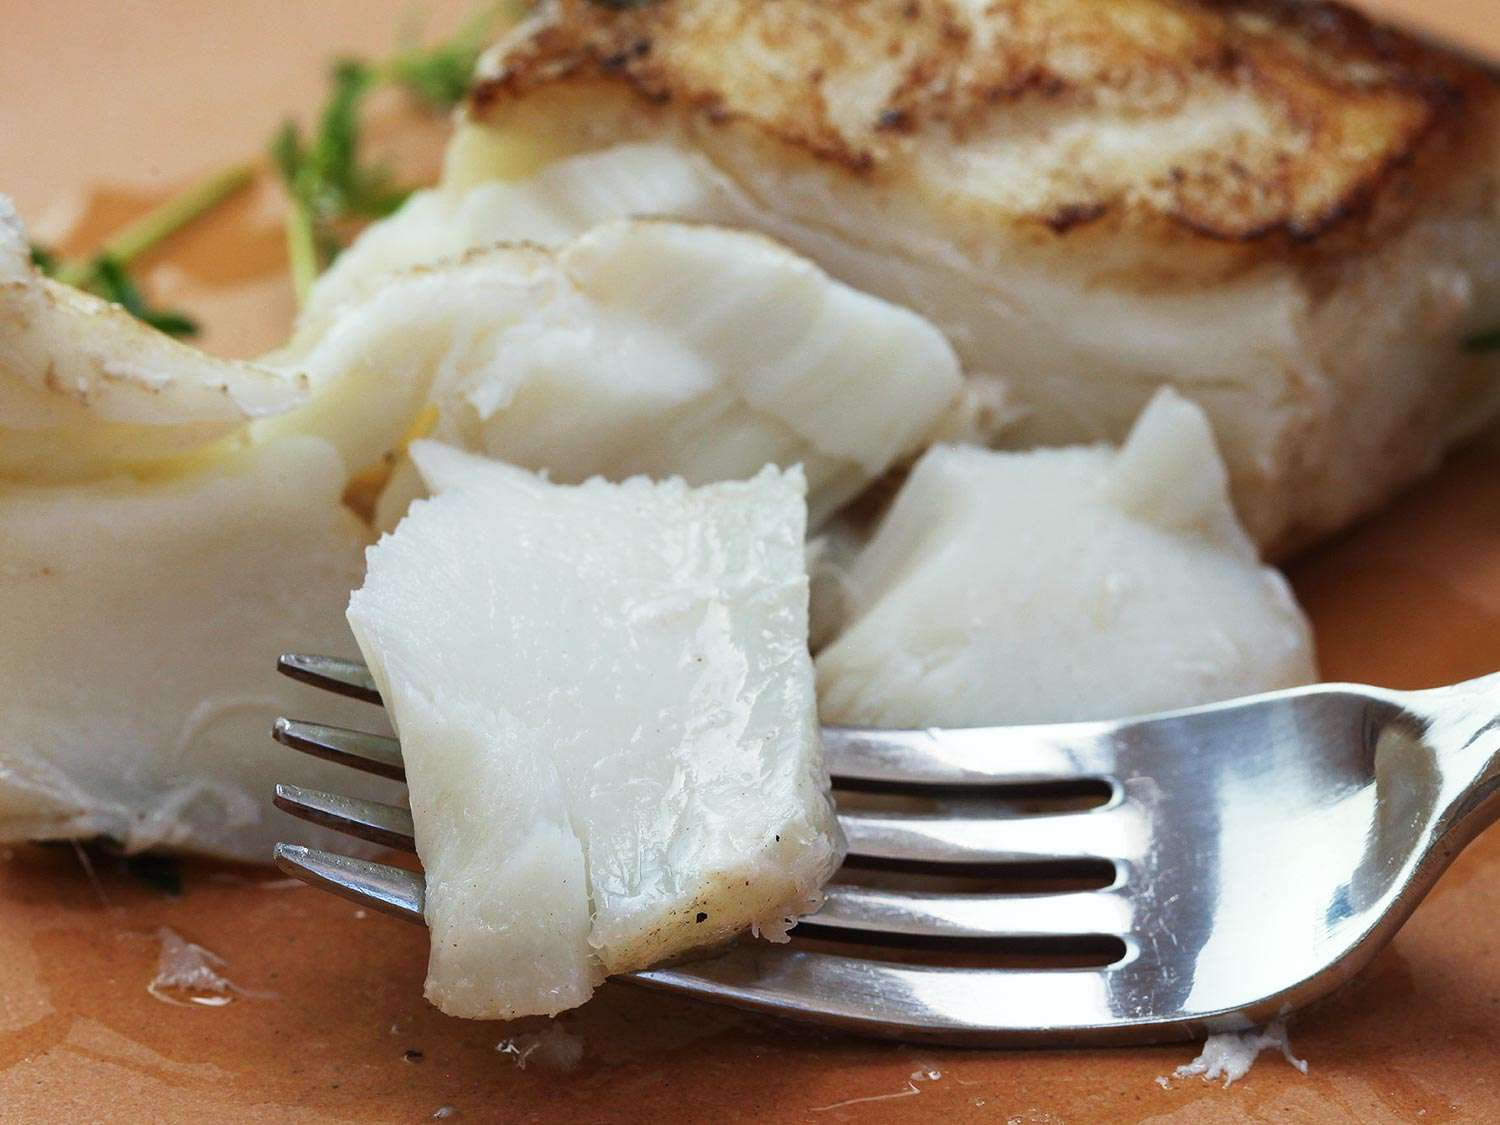 A fork picking up a piece of cooked halibut.